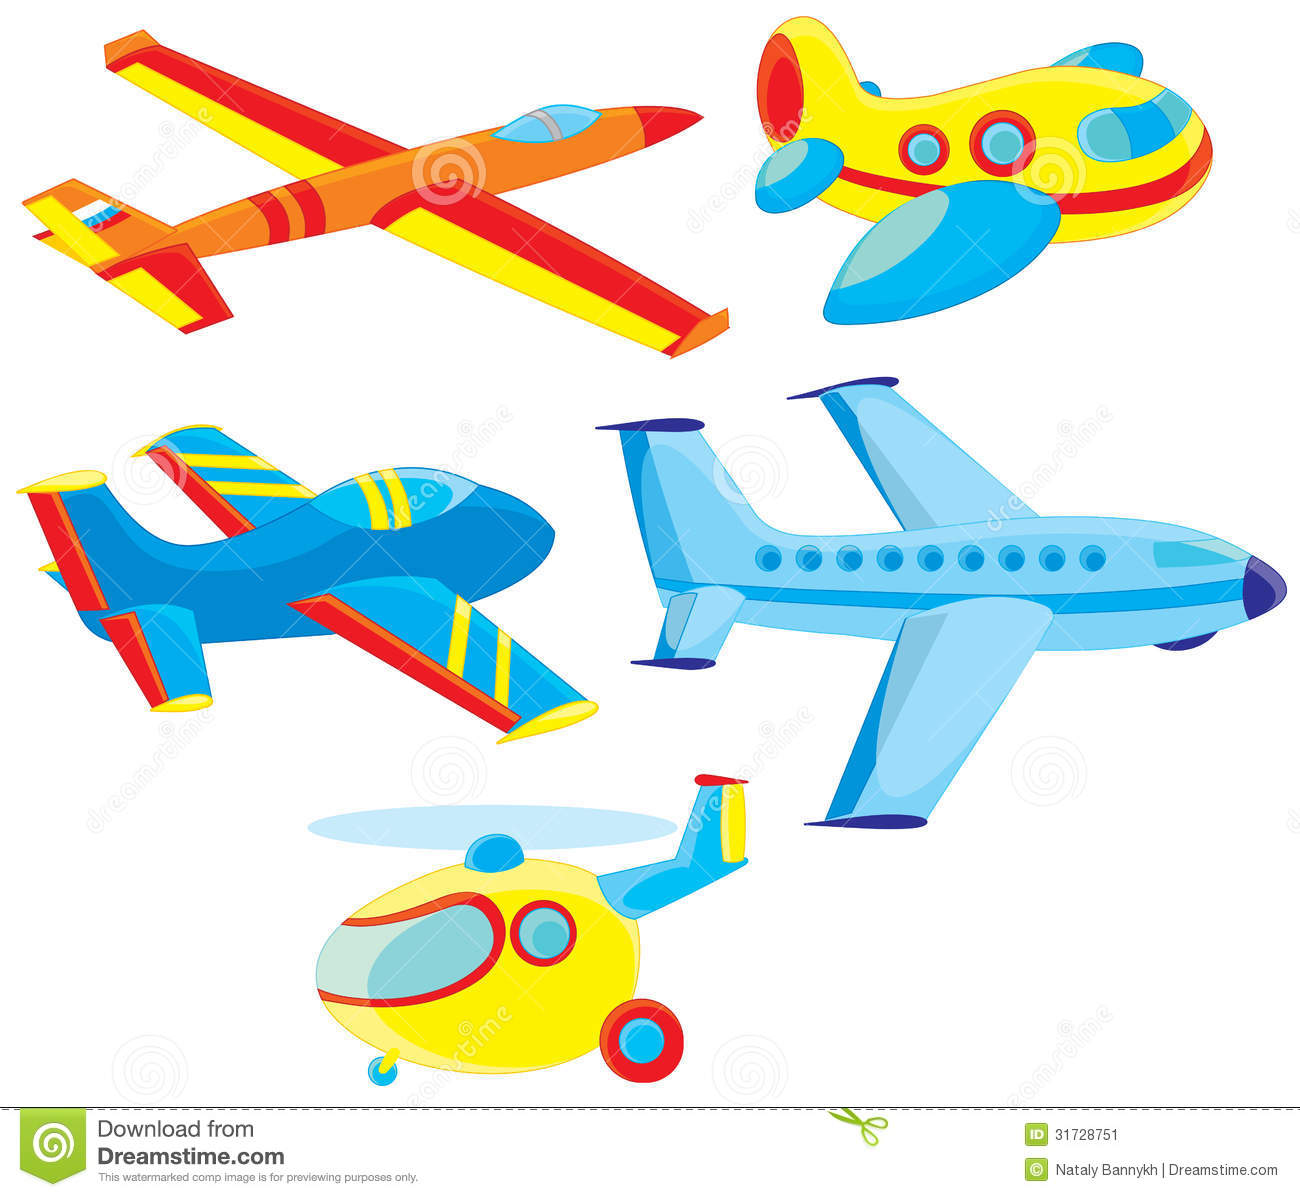 Cute Airplane Clipart | Clipart Panda - Free Clipart Images